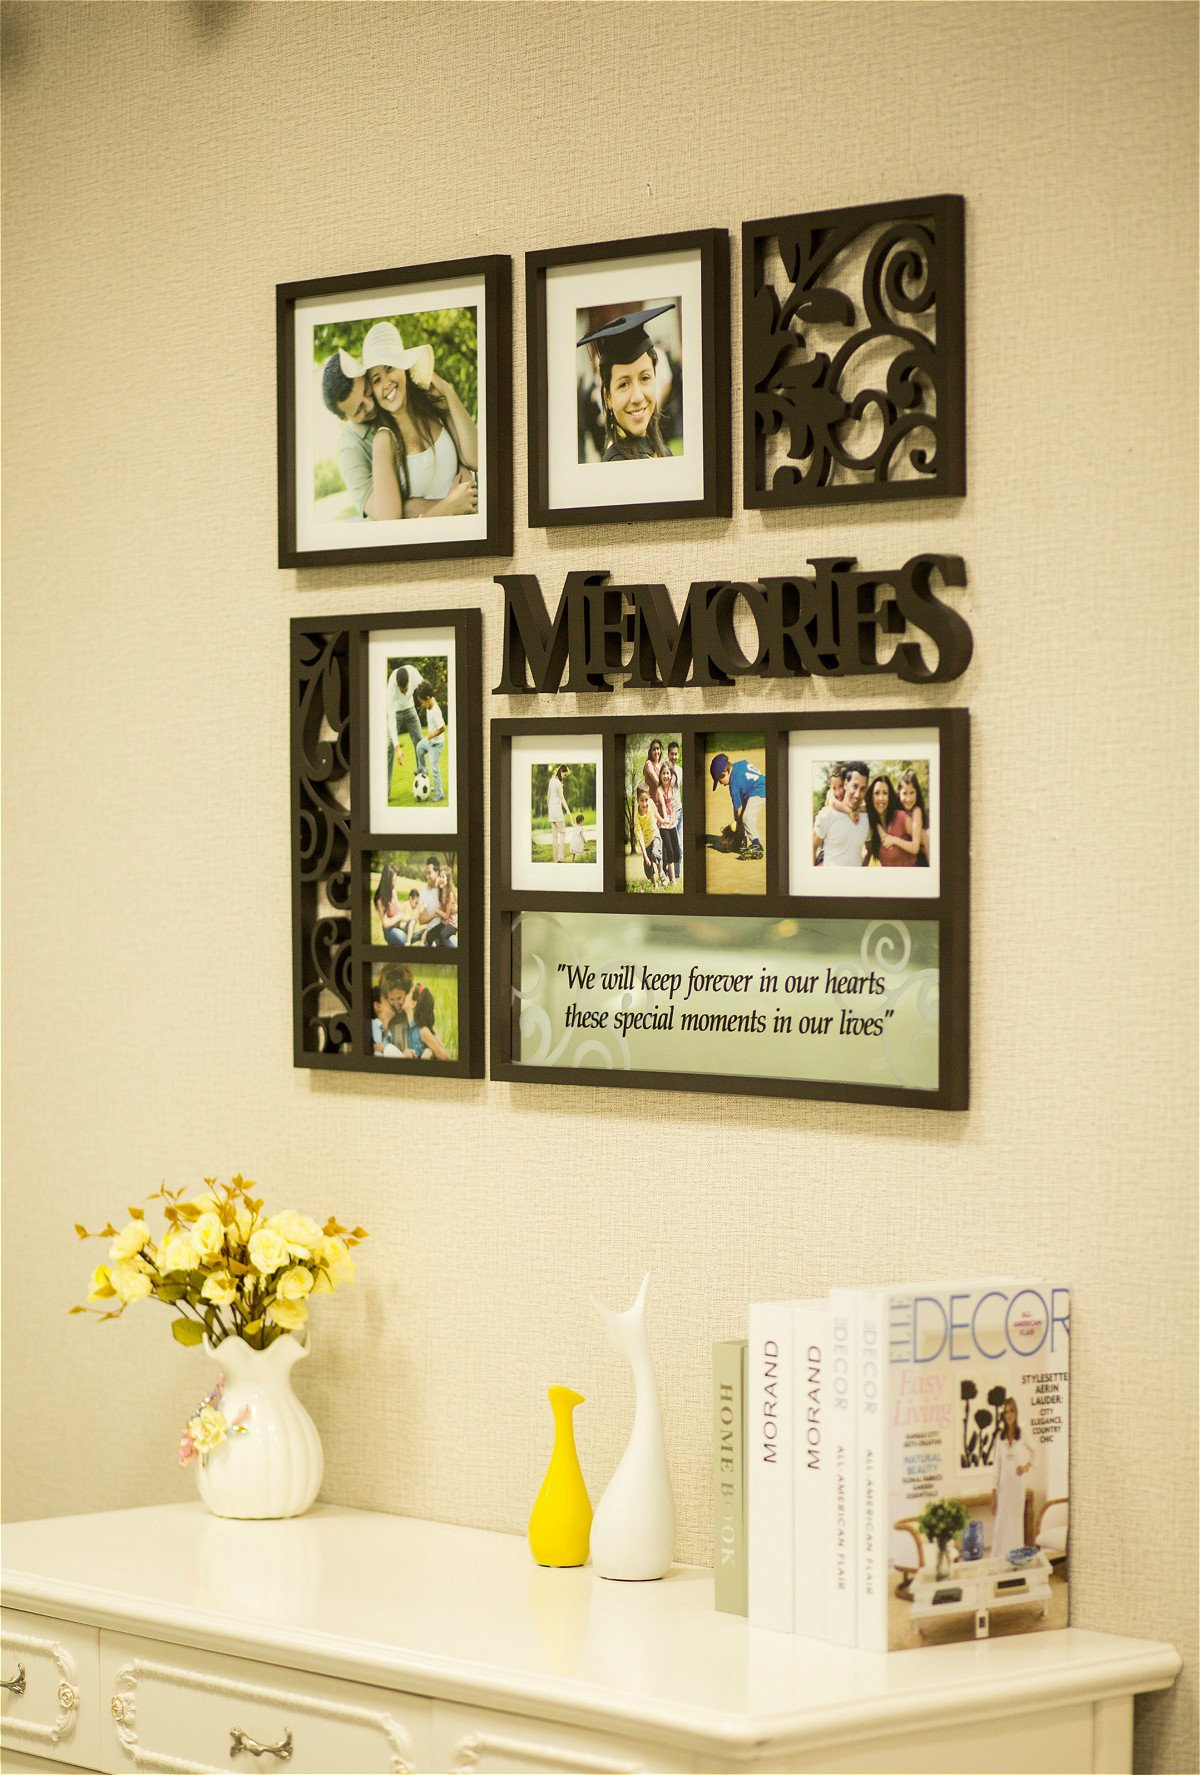 Picture Frame Set on Wall Art Decoration Sticker in Family Living Room and Bedroom (Memories)